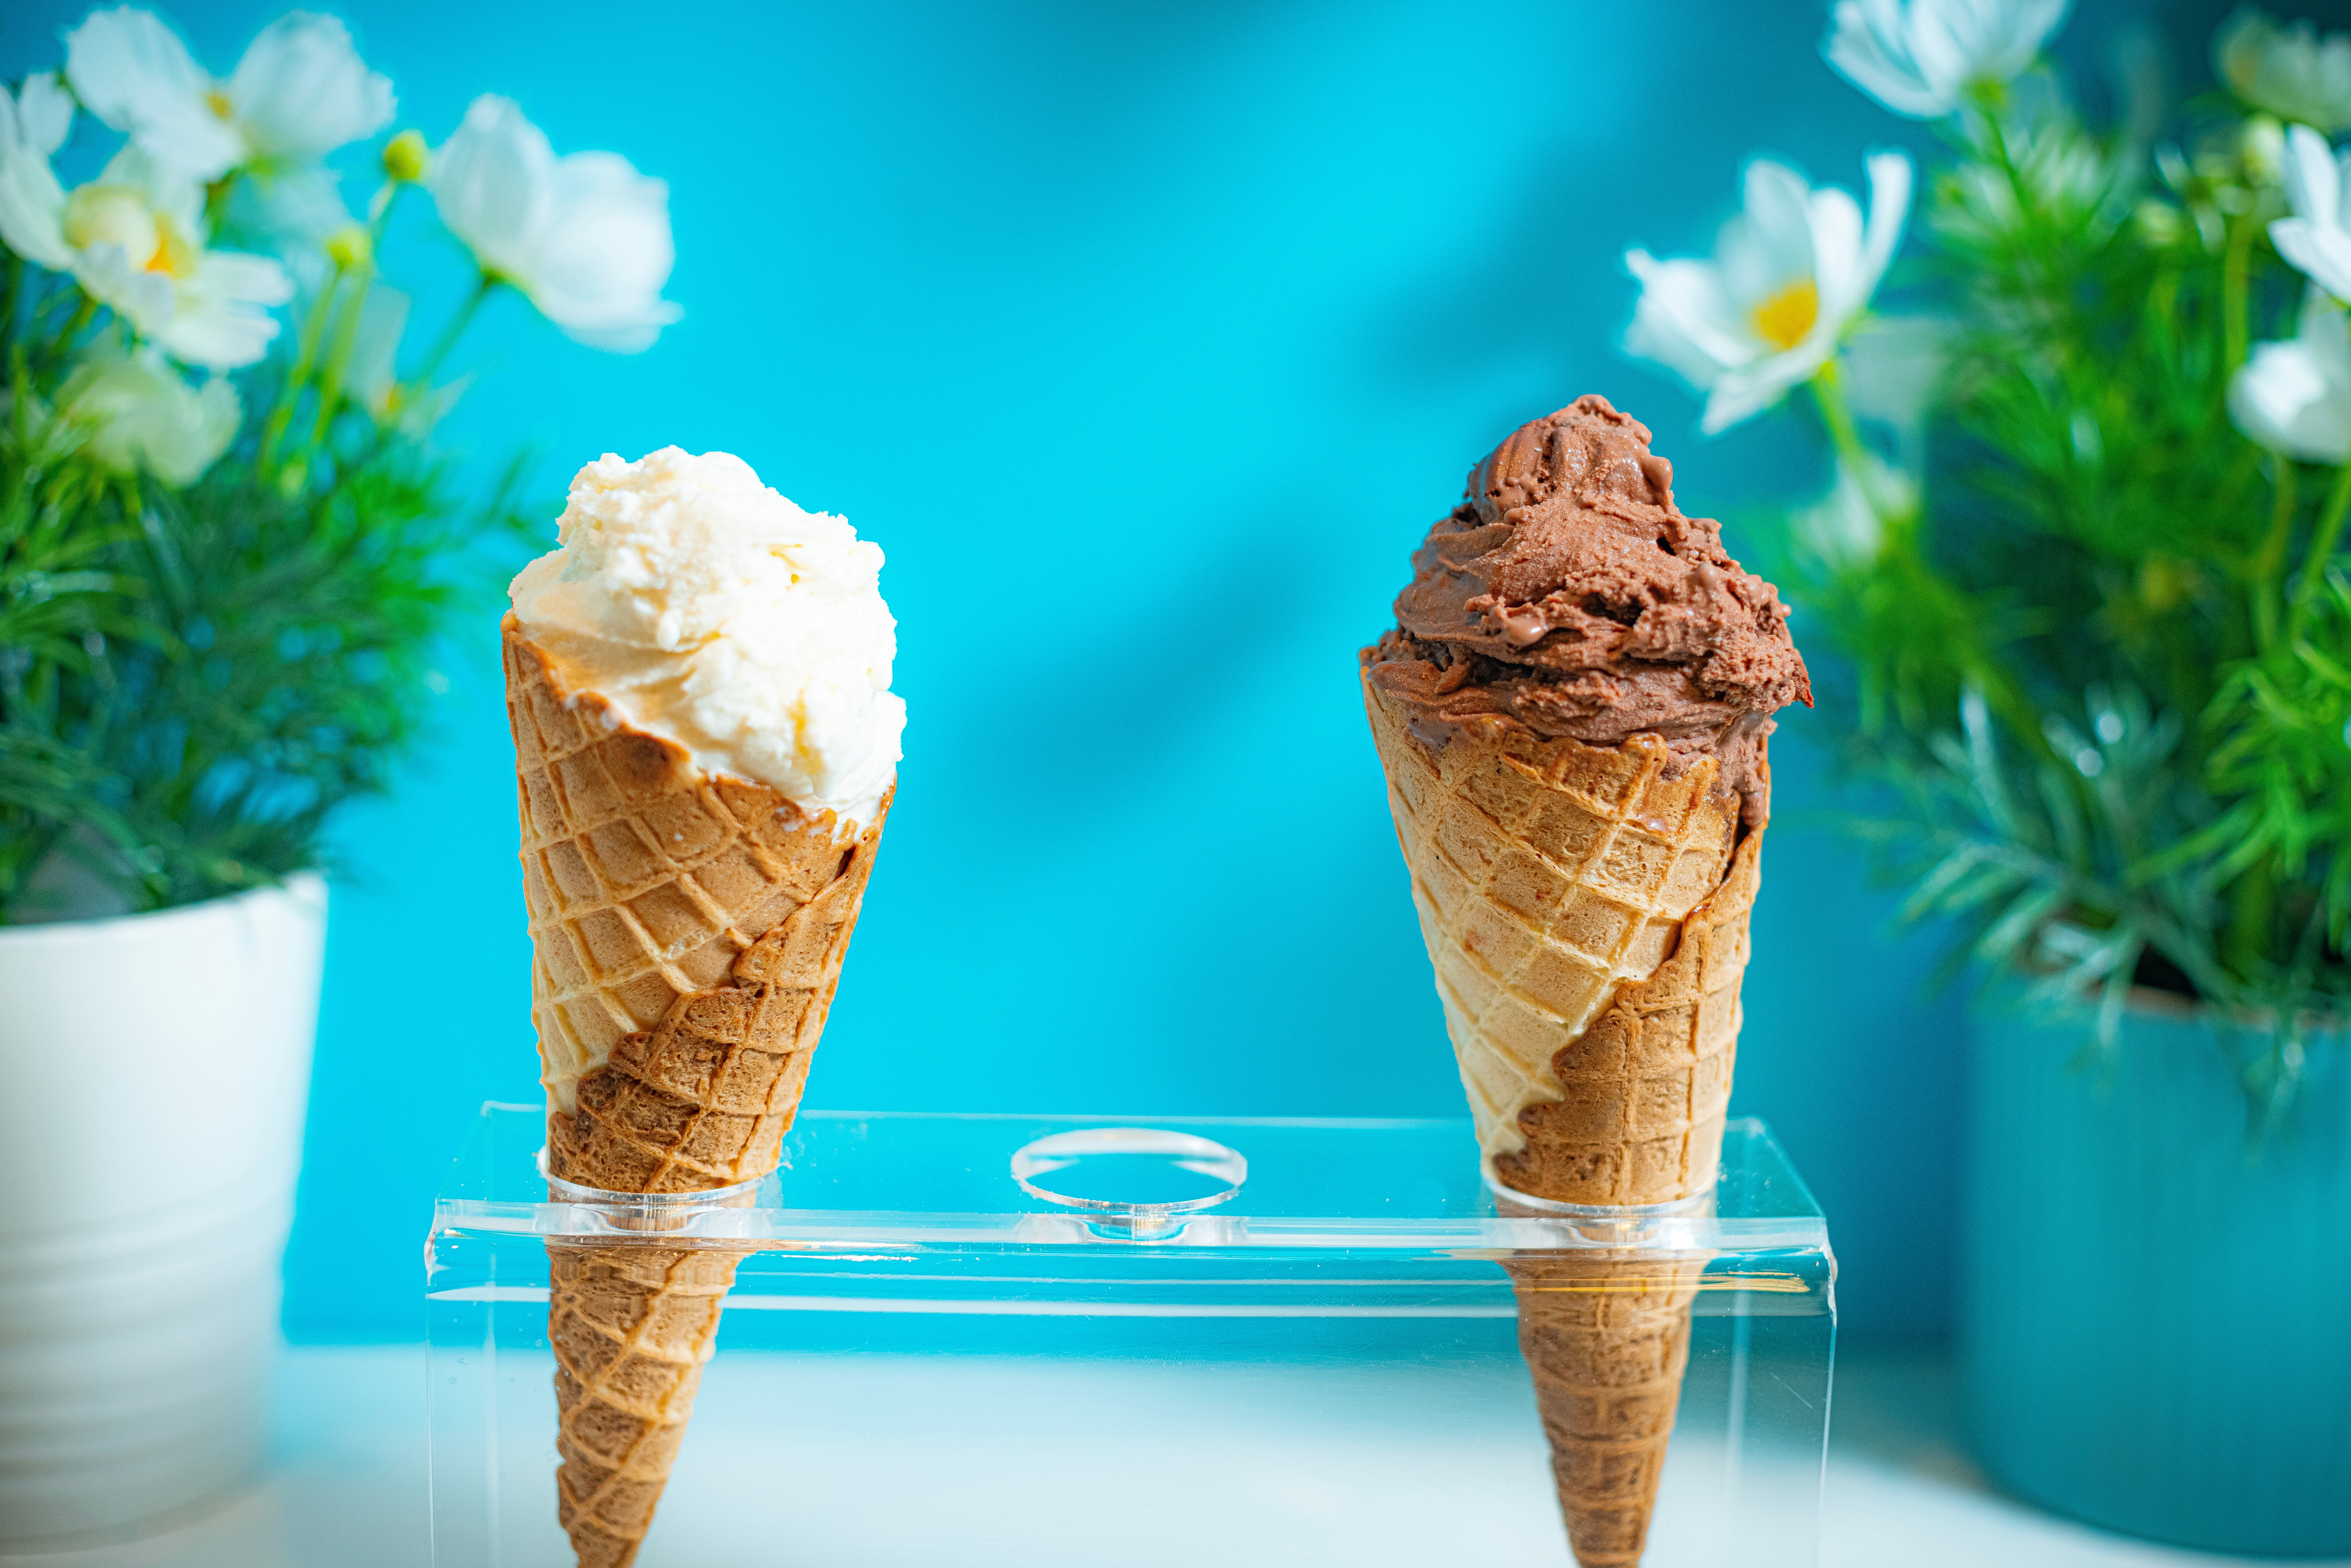 Ice cream consumption hasn't suffered this summer despite the pandemic